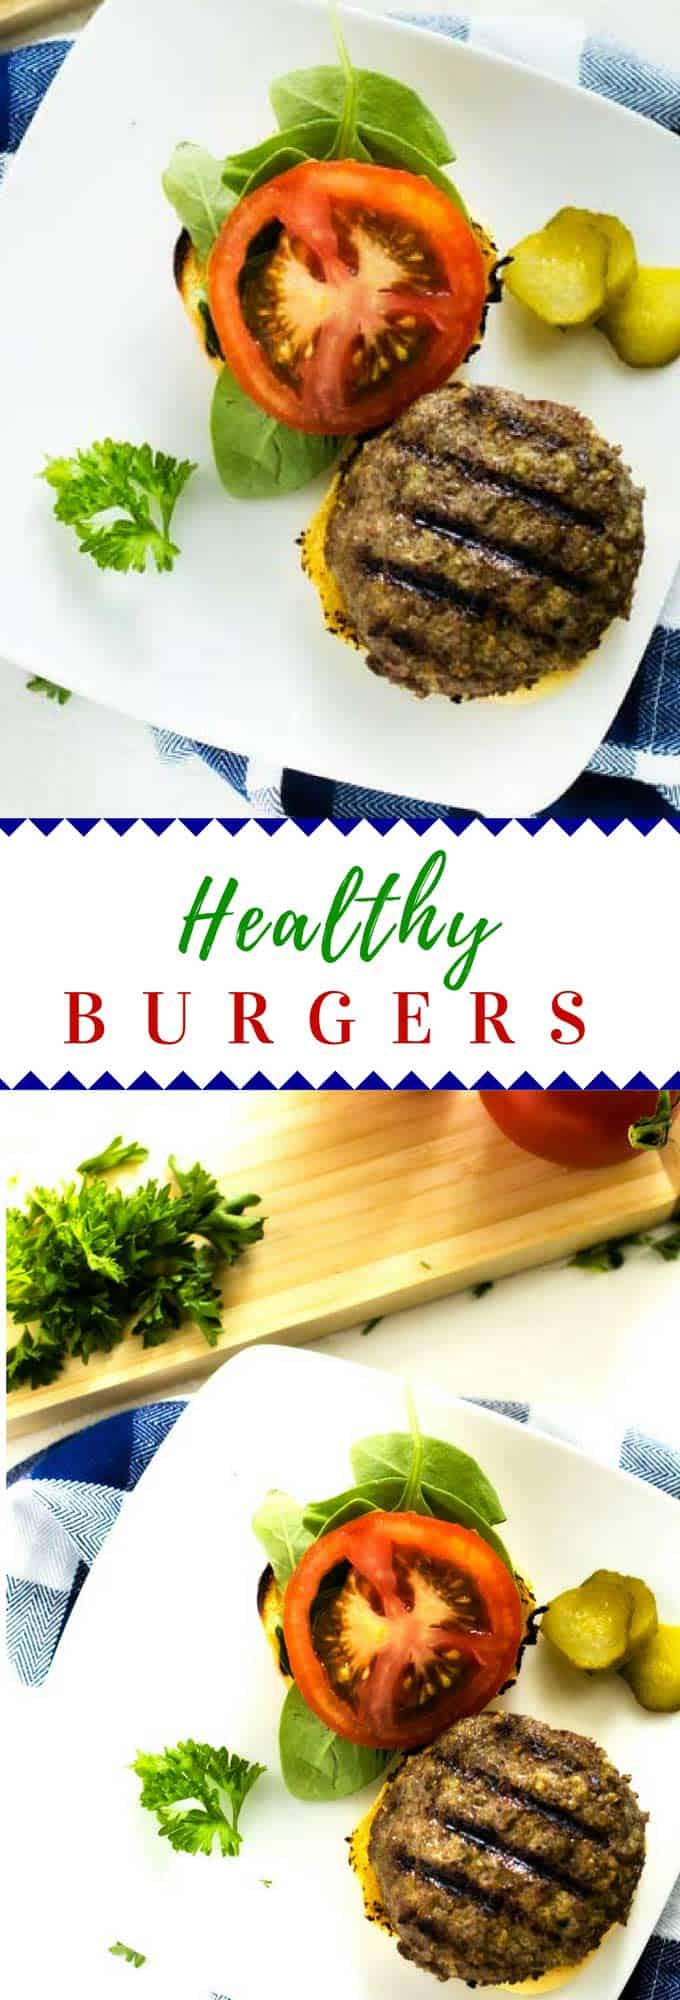 These Healthy Burgers can be made with either beef or turkey!  They packed with nutrition thanks to a few secret ingredients.  These easy to make burgers are perfect for your clean eating diet and also great for kids.  #burger #healthy #healthyrecipe #kidfriendlyrecipe #quinoa